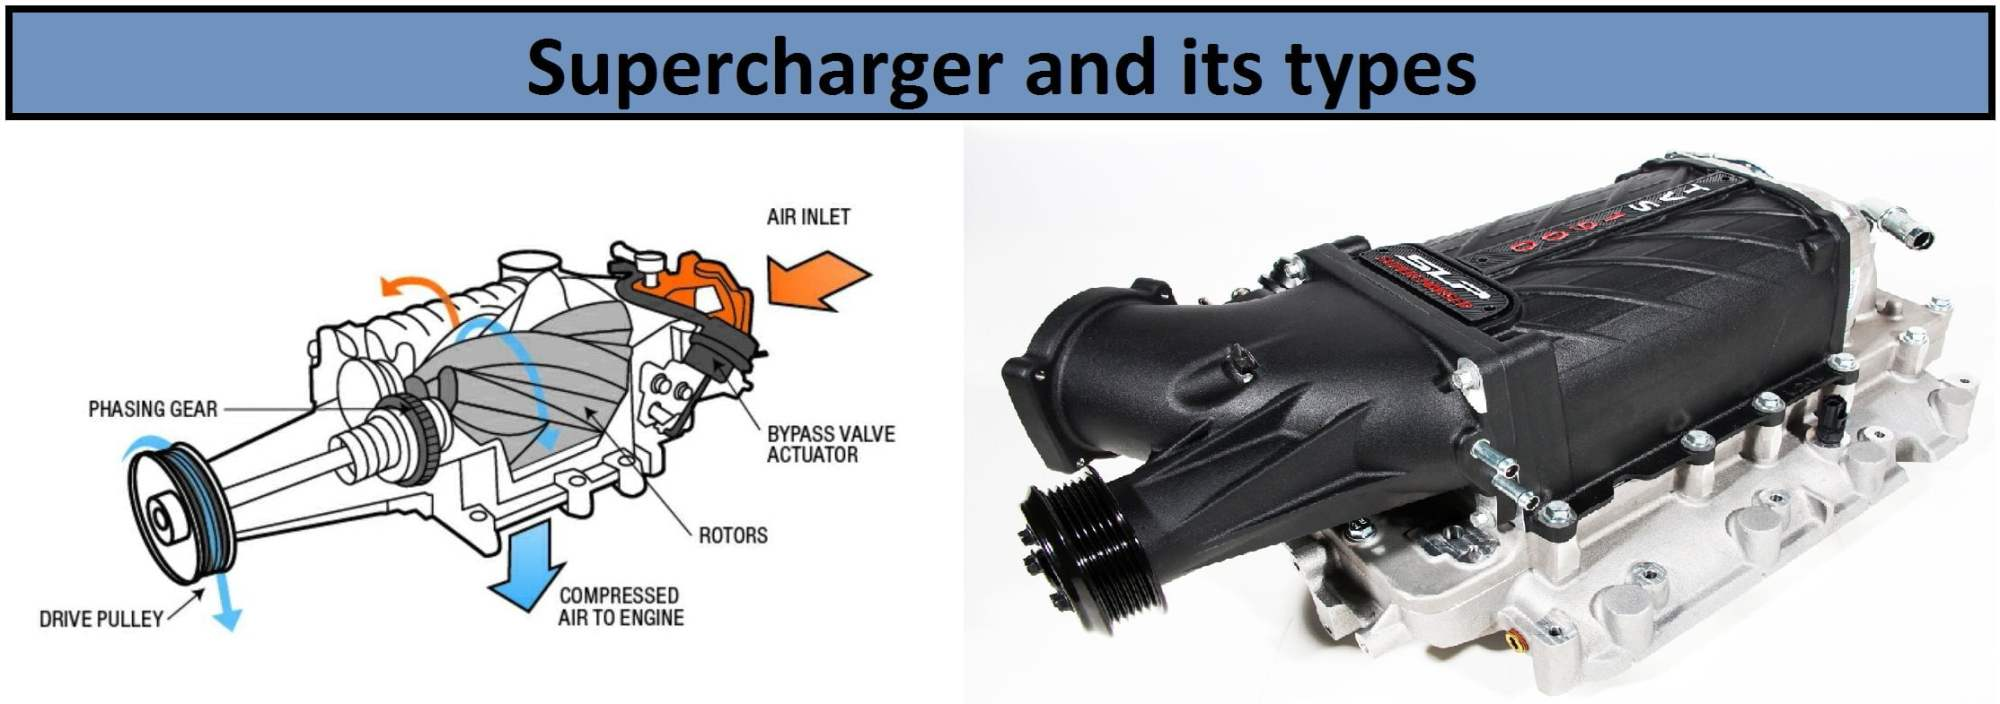 hight resolution of supercharger